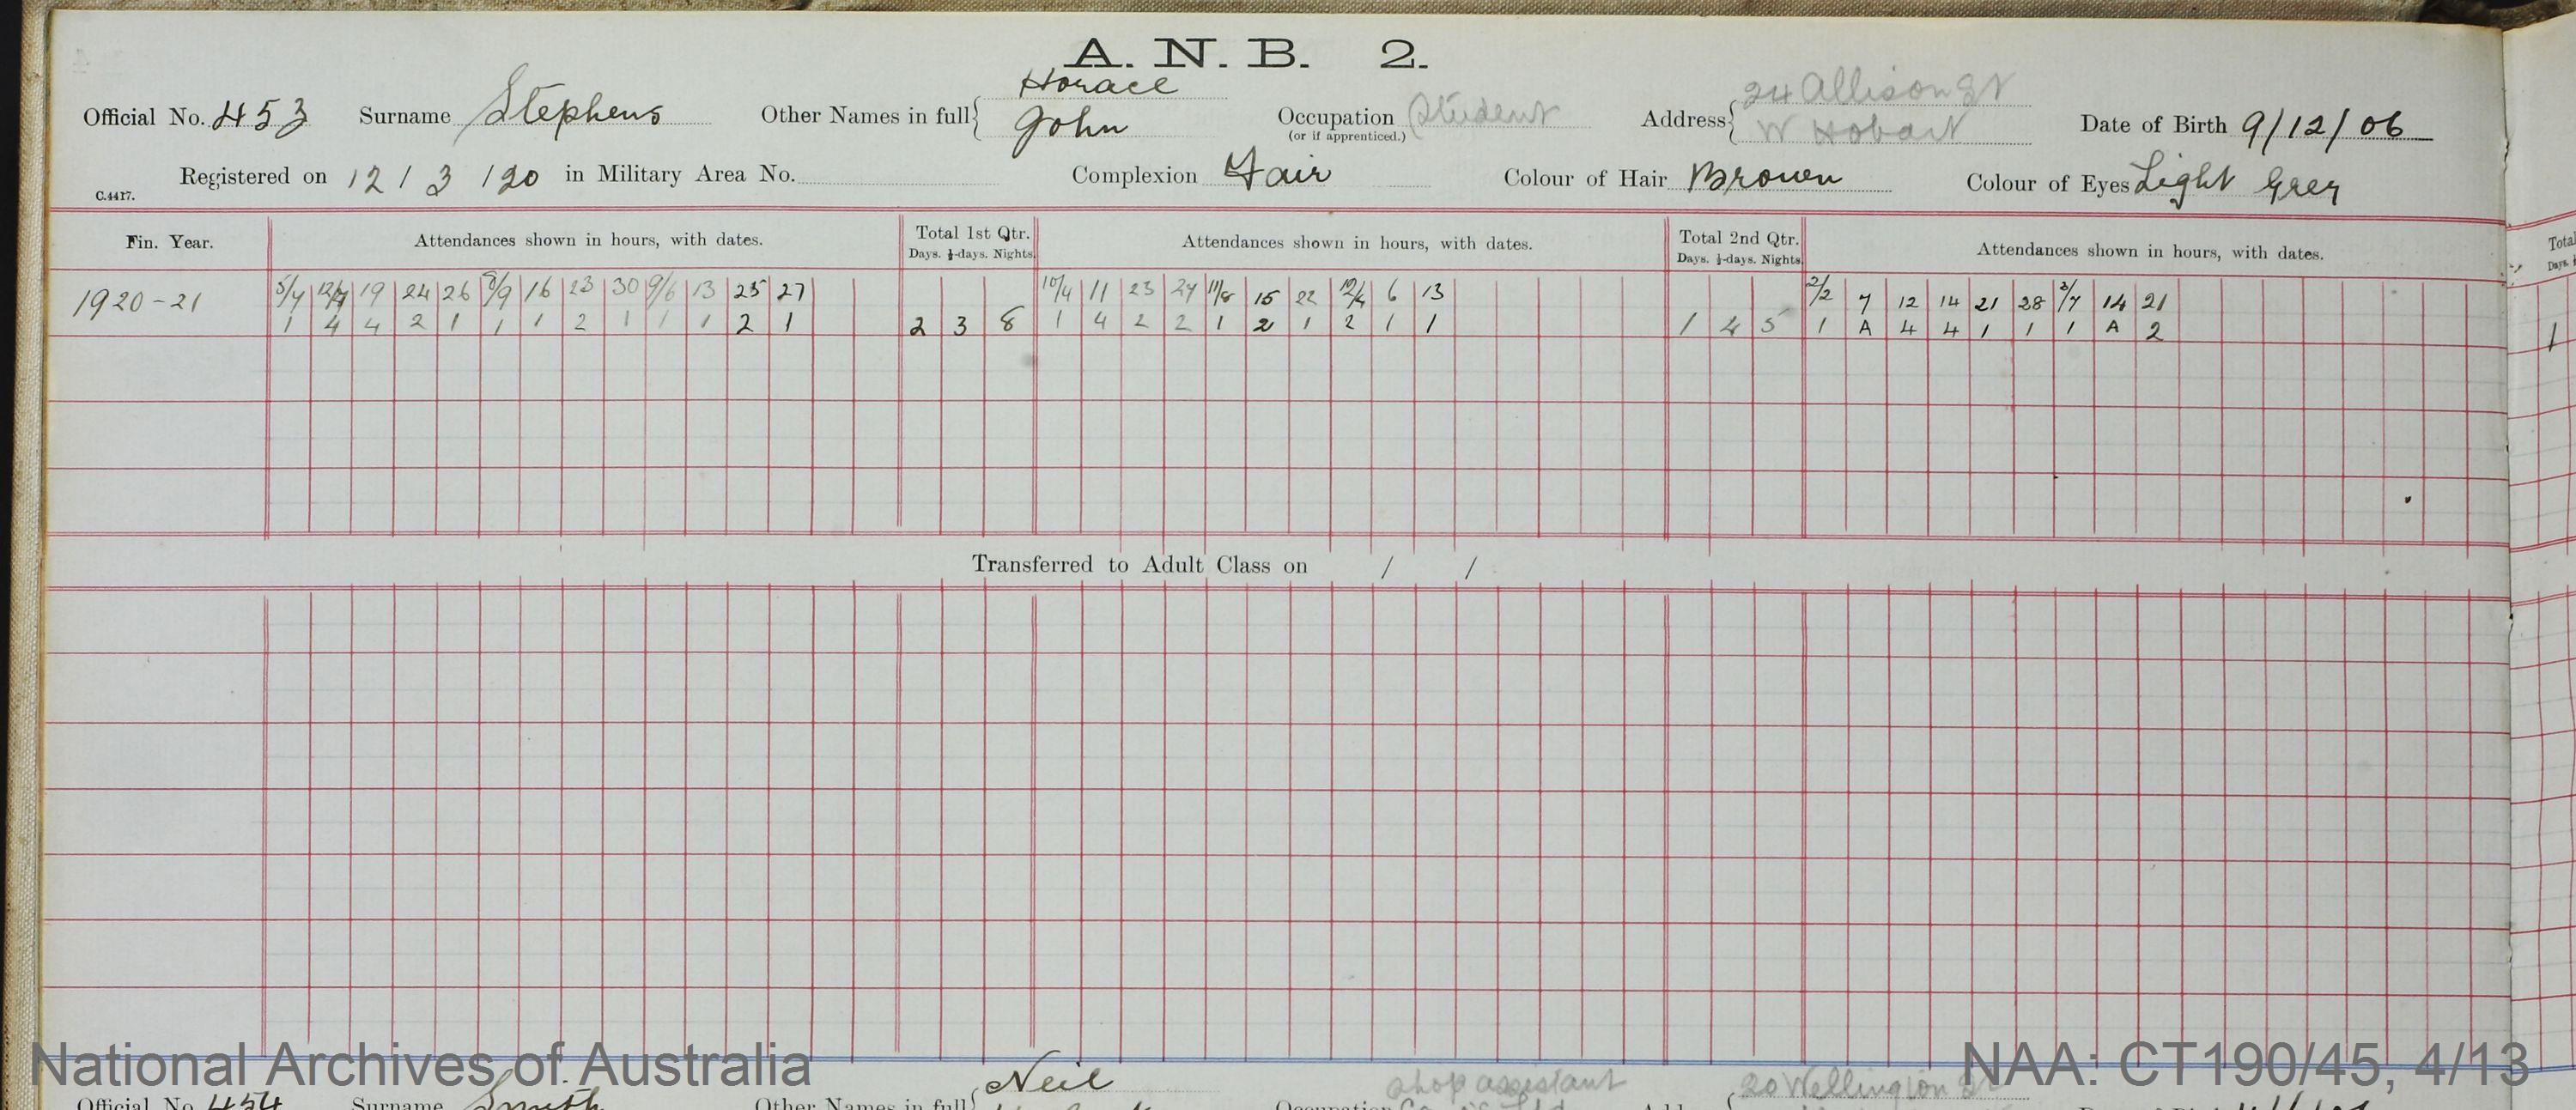 SURNAME - STEPHENS;  GIVEN NAME(S) - Horace John;  OFFICIAL NUMBER - 453;  DATE OF BIRTH - 9 December 1906;  PLACE OF BIRTH - [Unknown];  NEXT OF KIN - [Unknown];  SERVICE/STATION -Tasmania;  REGISTRATION DATE - 12 March 1920